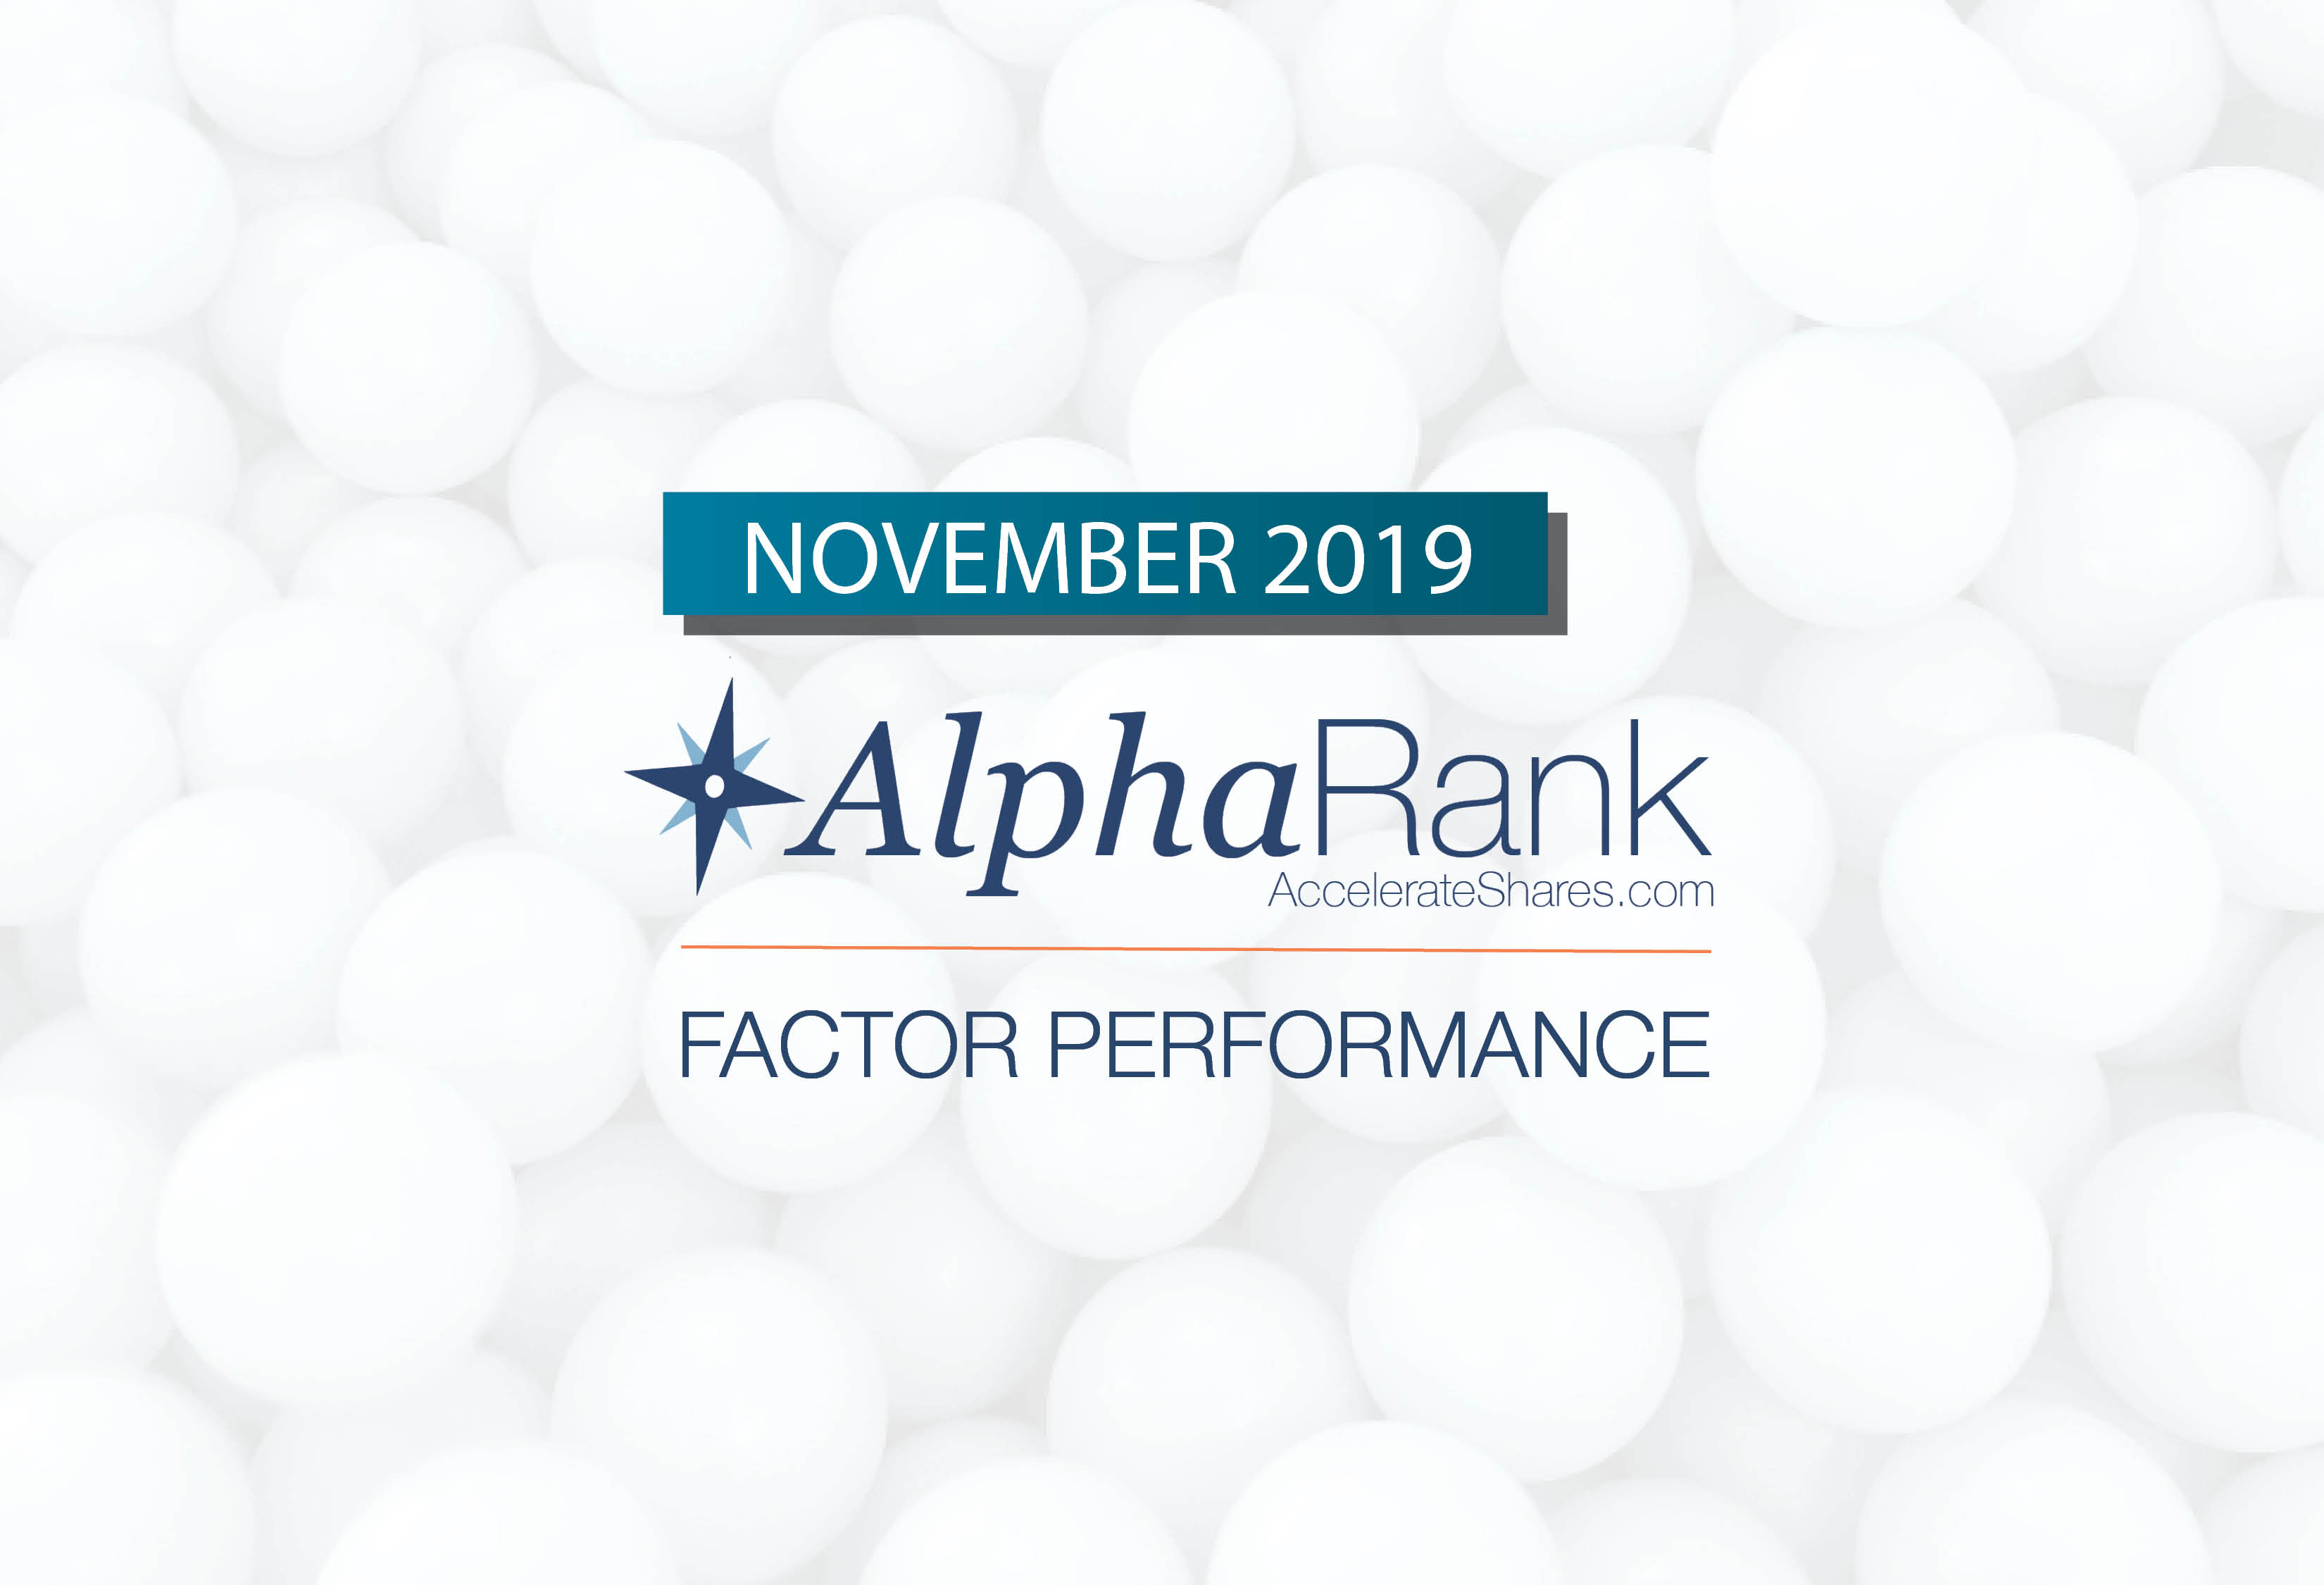 AlphaRank Factor Performance—November 2019